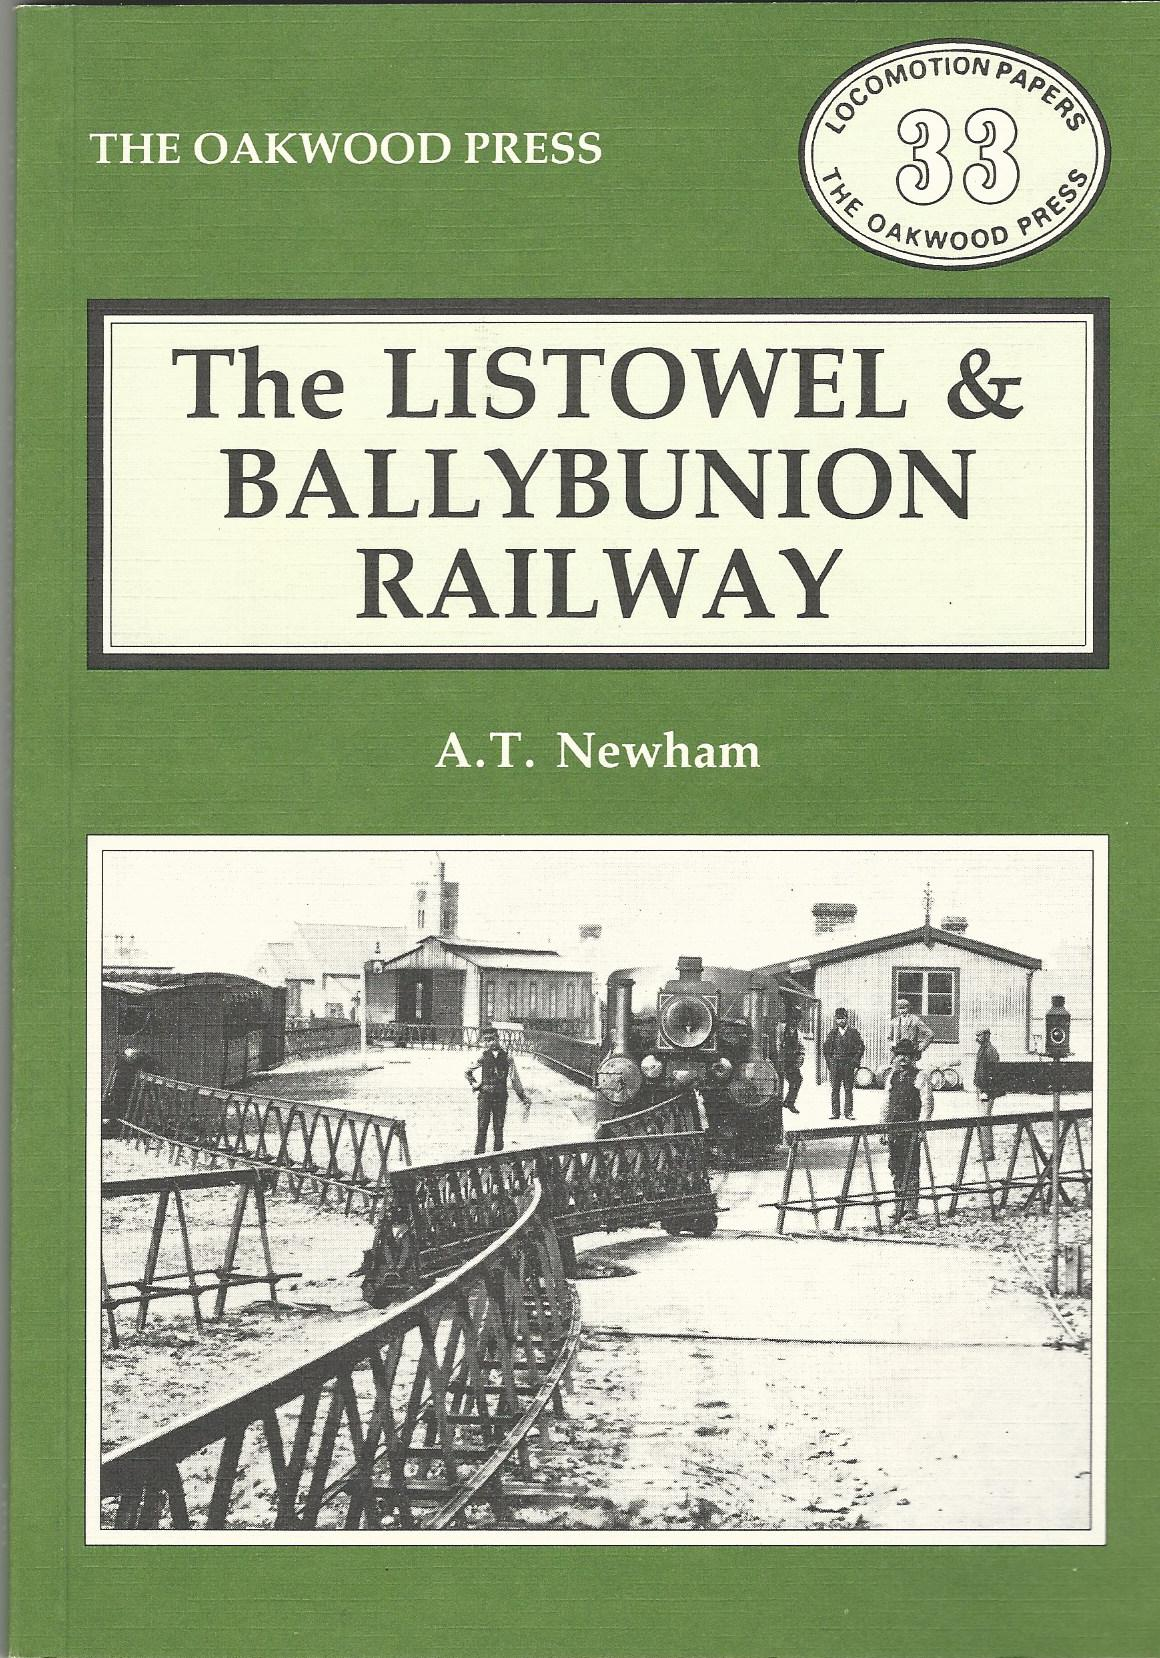 Image for Listowel and Ballybunion Railway (Locomotion Papers)